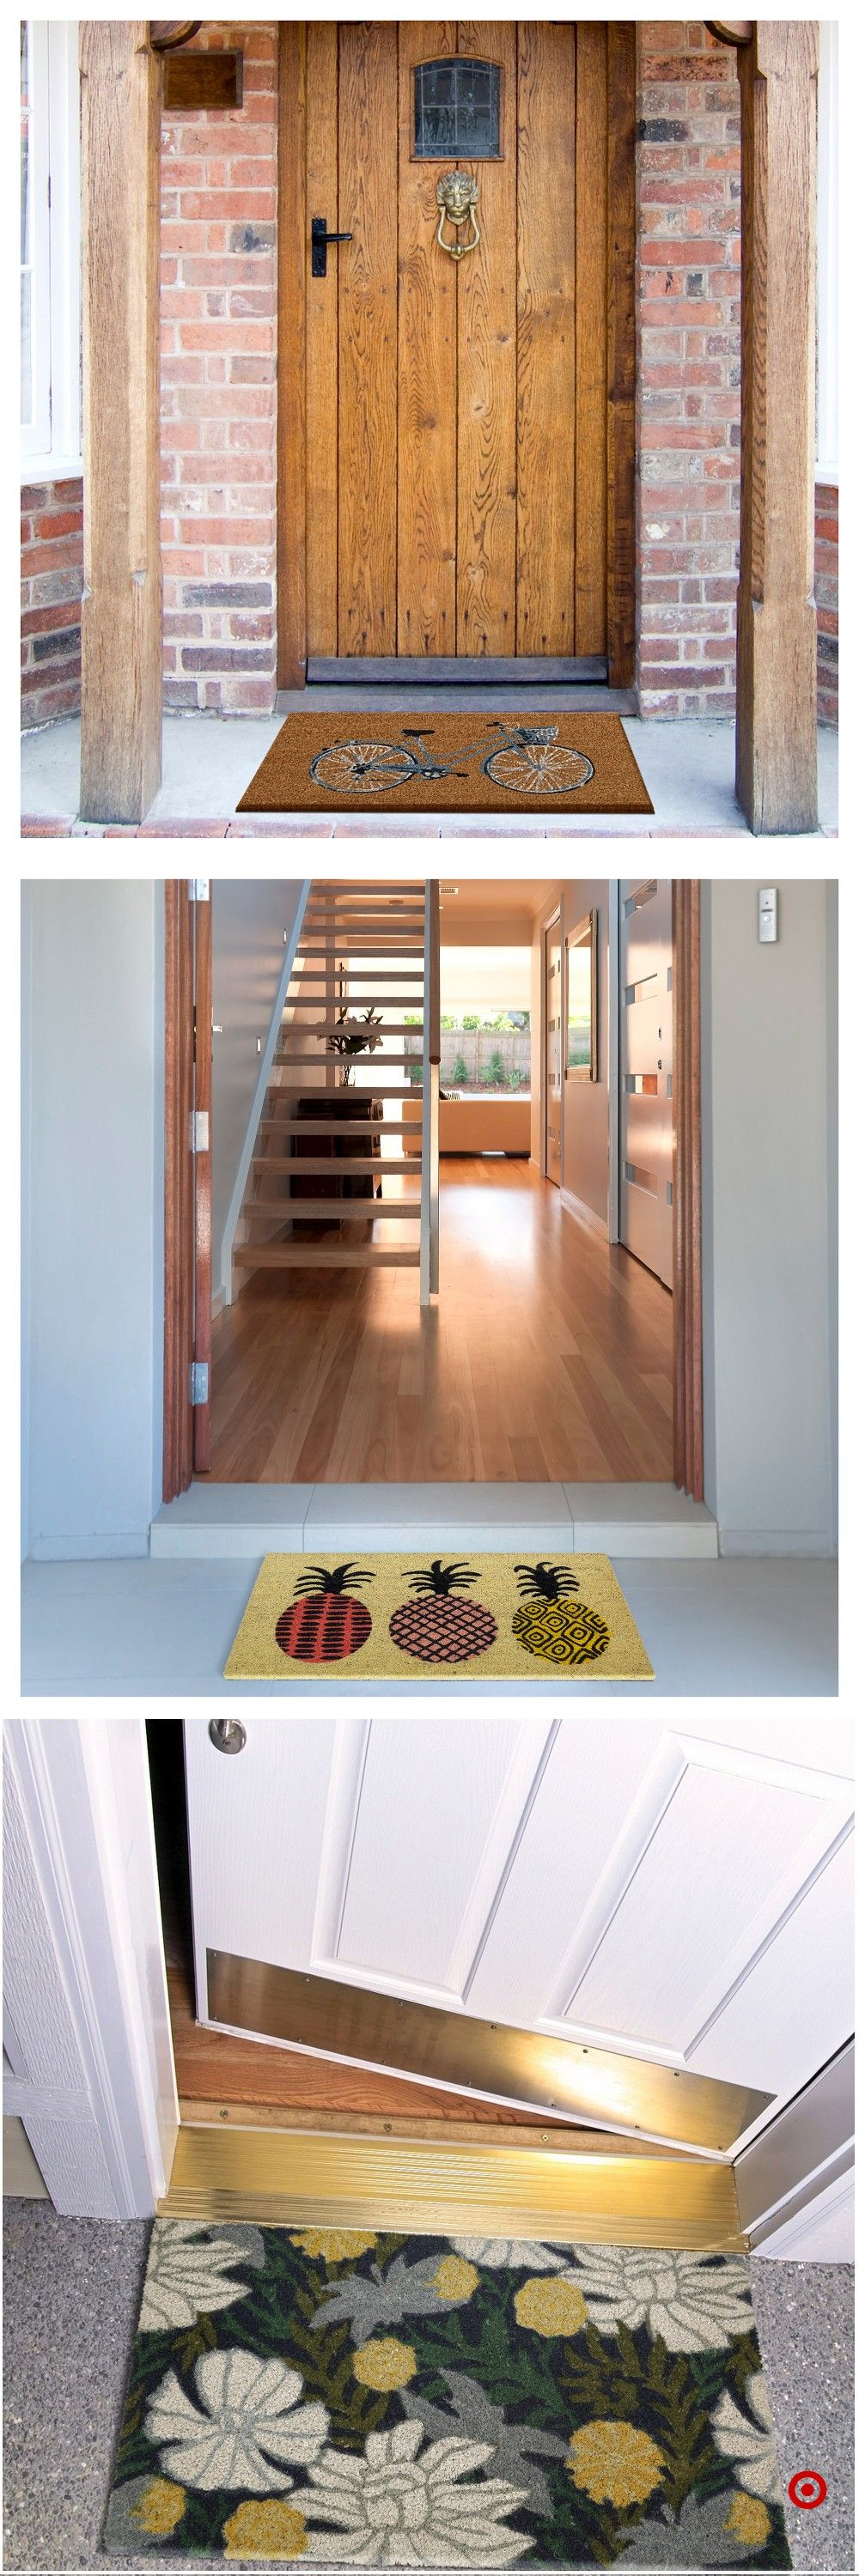 Shop Target For Door Mat You Will Love At Great Low Pricesfree Entrancing Kitchen Mats Target Design Inspiration